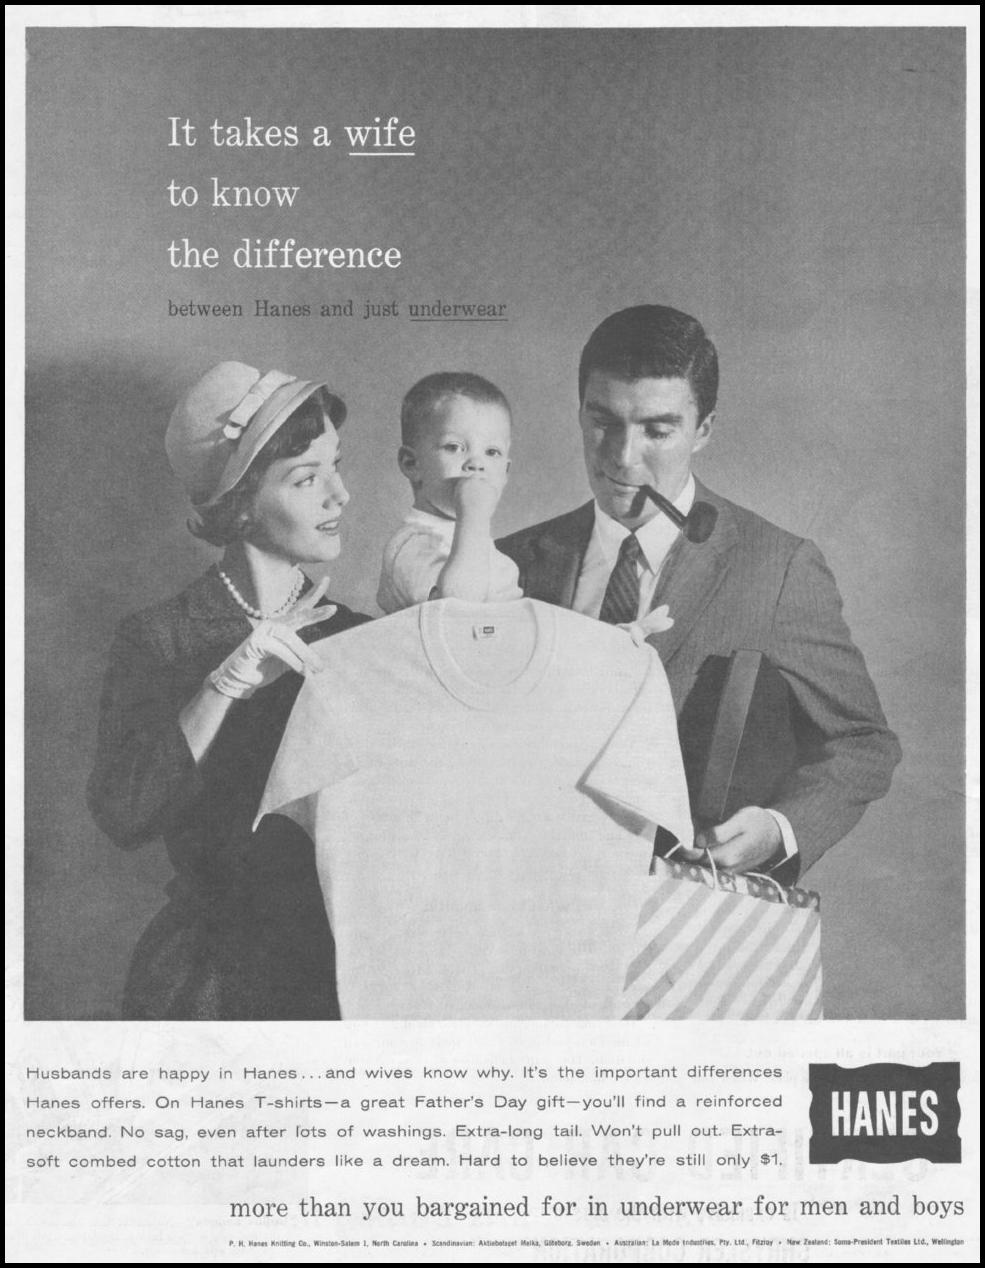 HANES UNDERWEAR SATURDAY EVENING POST 06/11/1960 p. 18